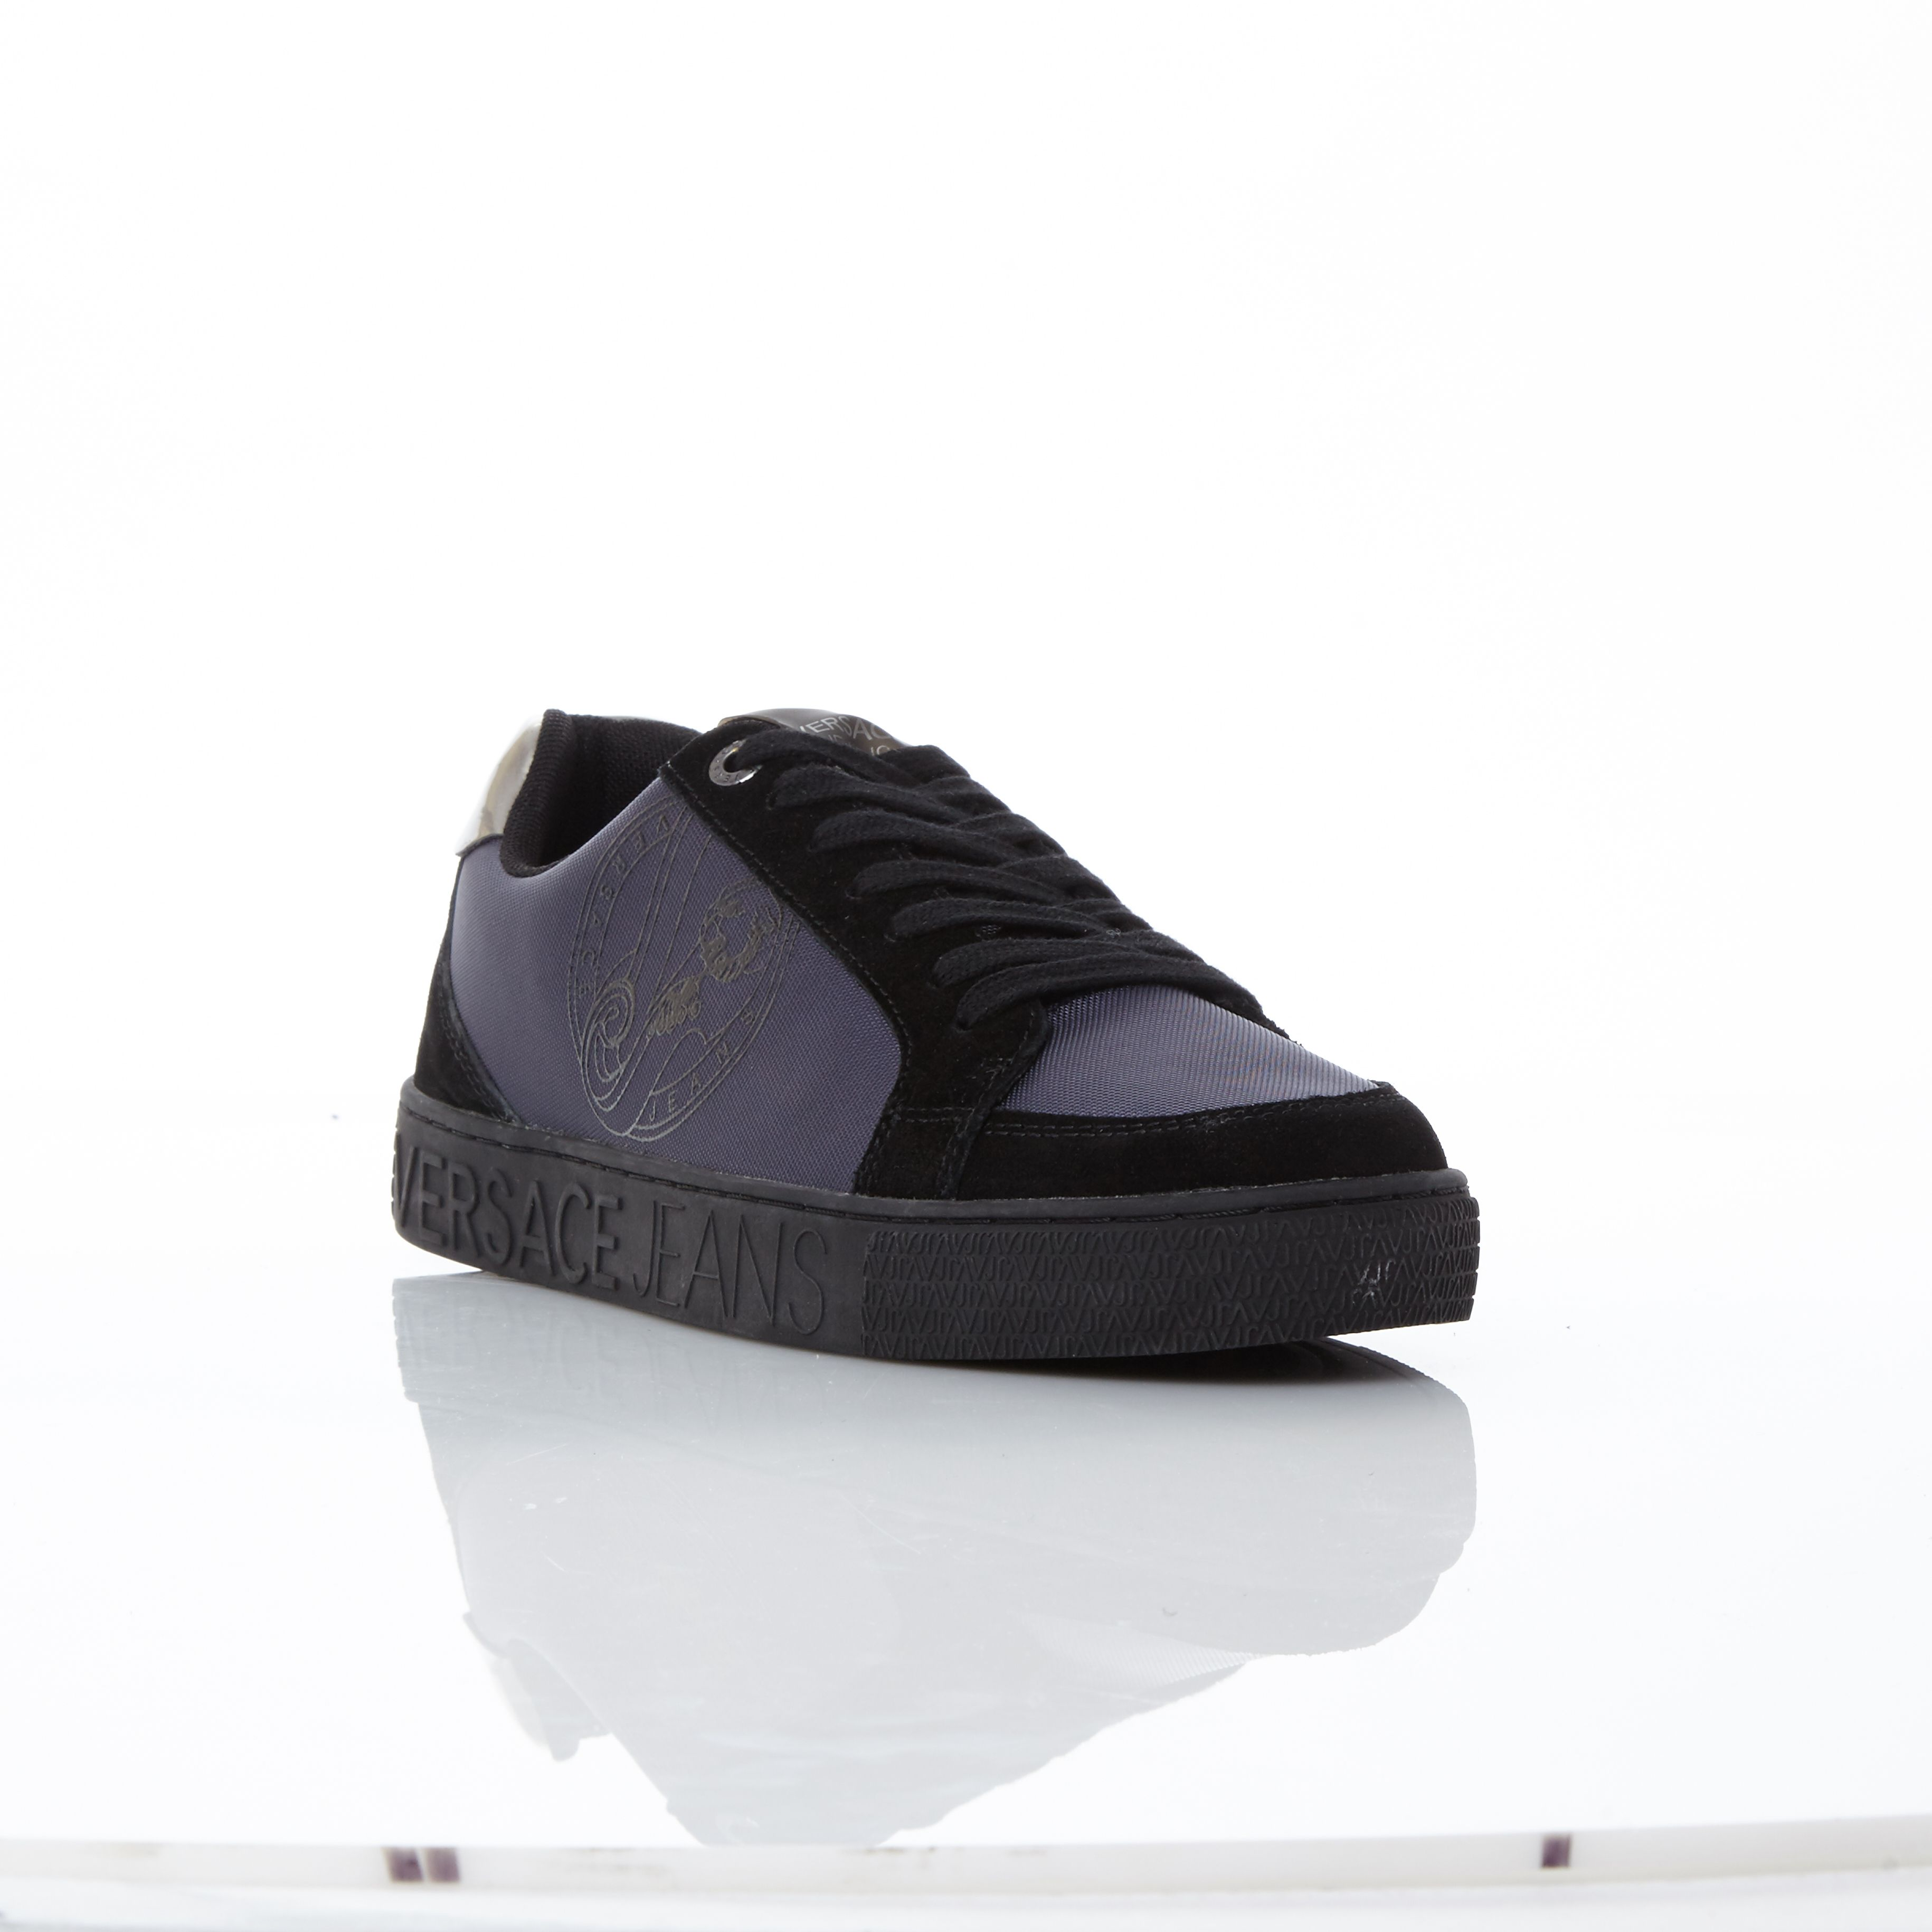 Versace Jeans Versace Jeans Eo y0bse2 stamp cupsole trainers, Blue